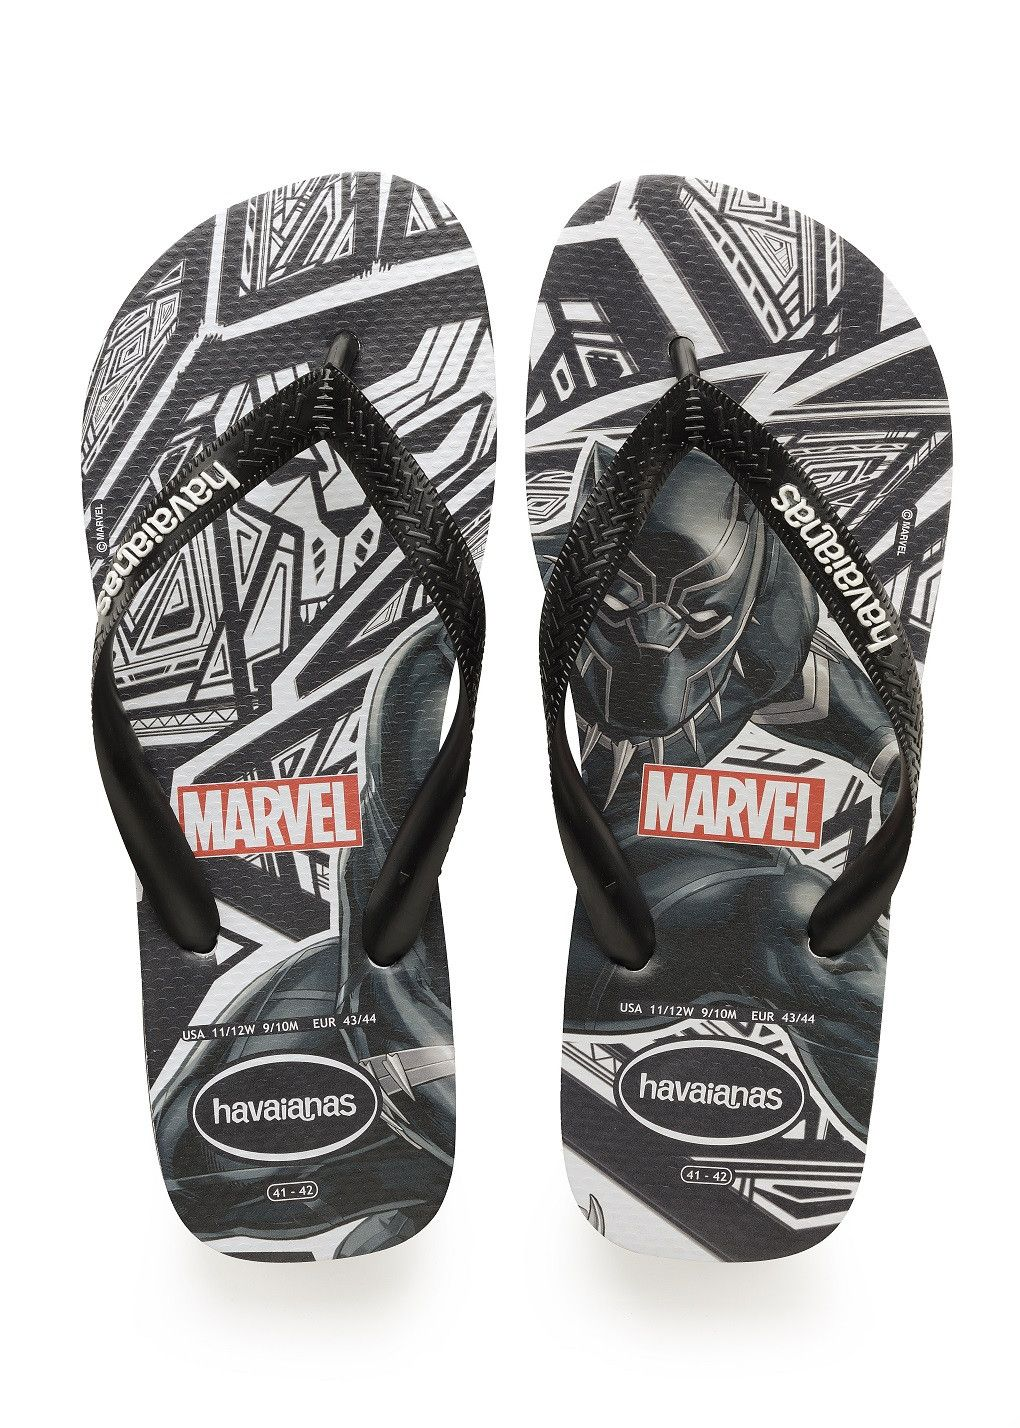 cb8f89942 Havaianas Top Marvel Black Panther Sandal Black Price From  ₩27